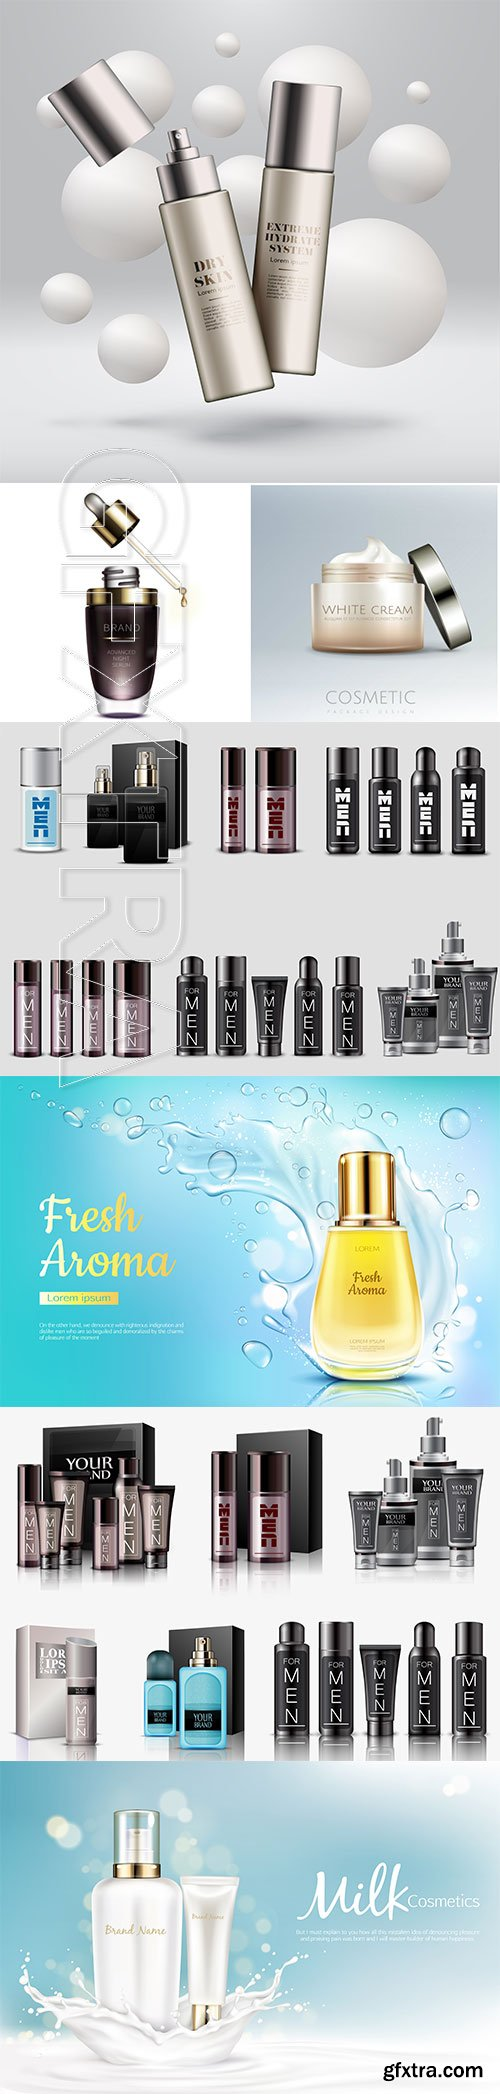 Vector posters advertising cosmetics # 2